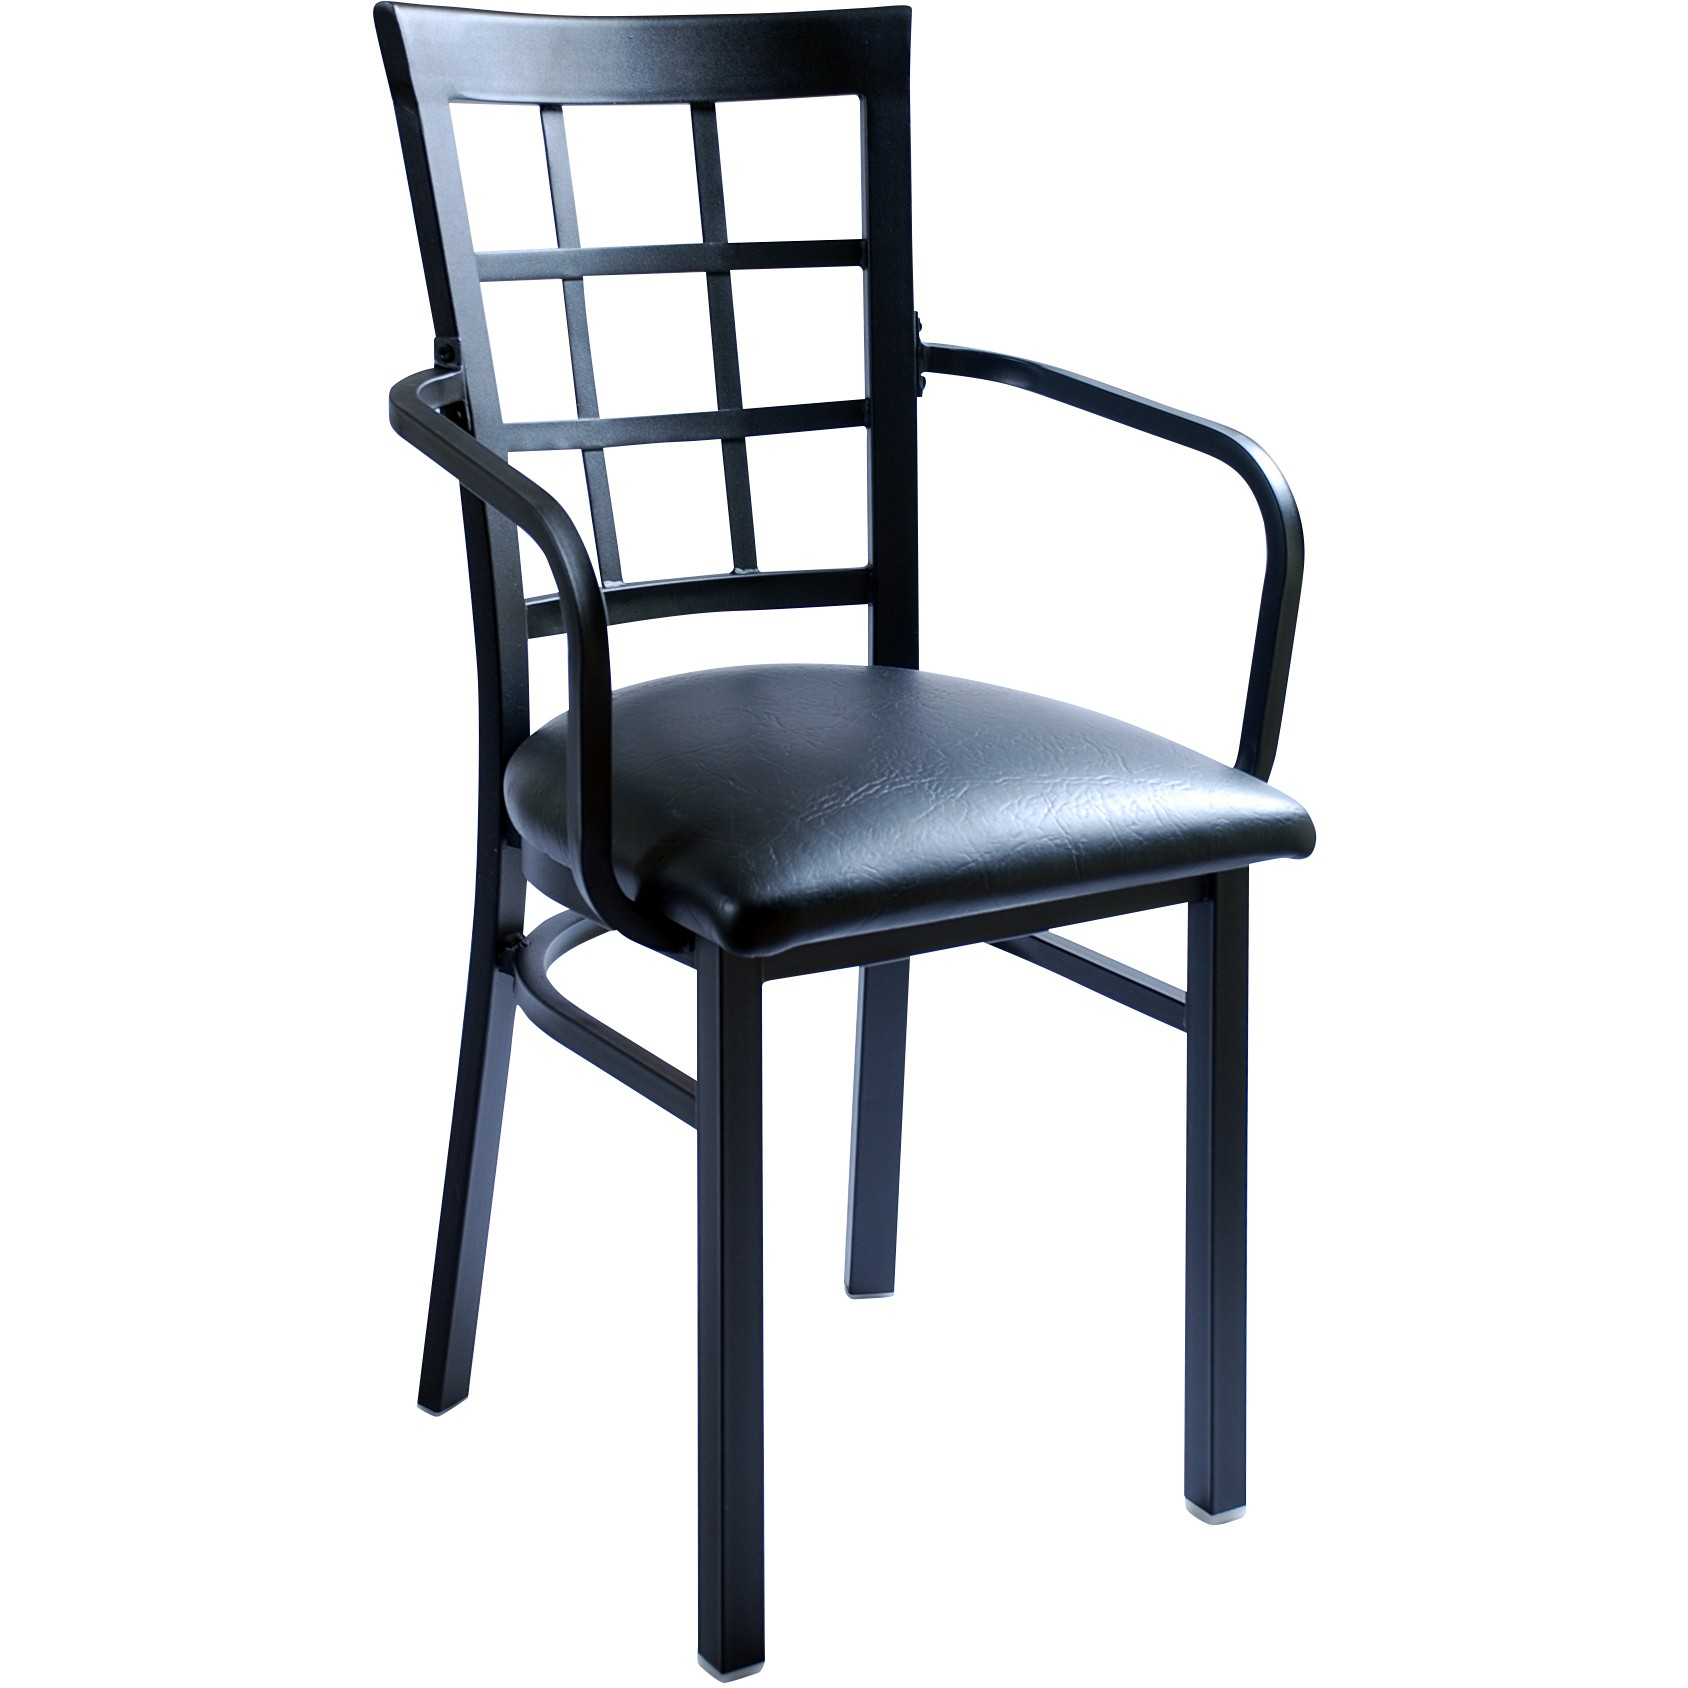 steel net chair gliding with ottoman window back metal restaurant arms black frame a vinyl seat